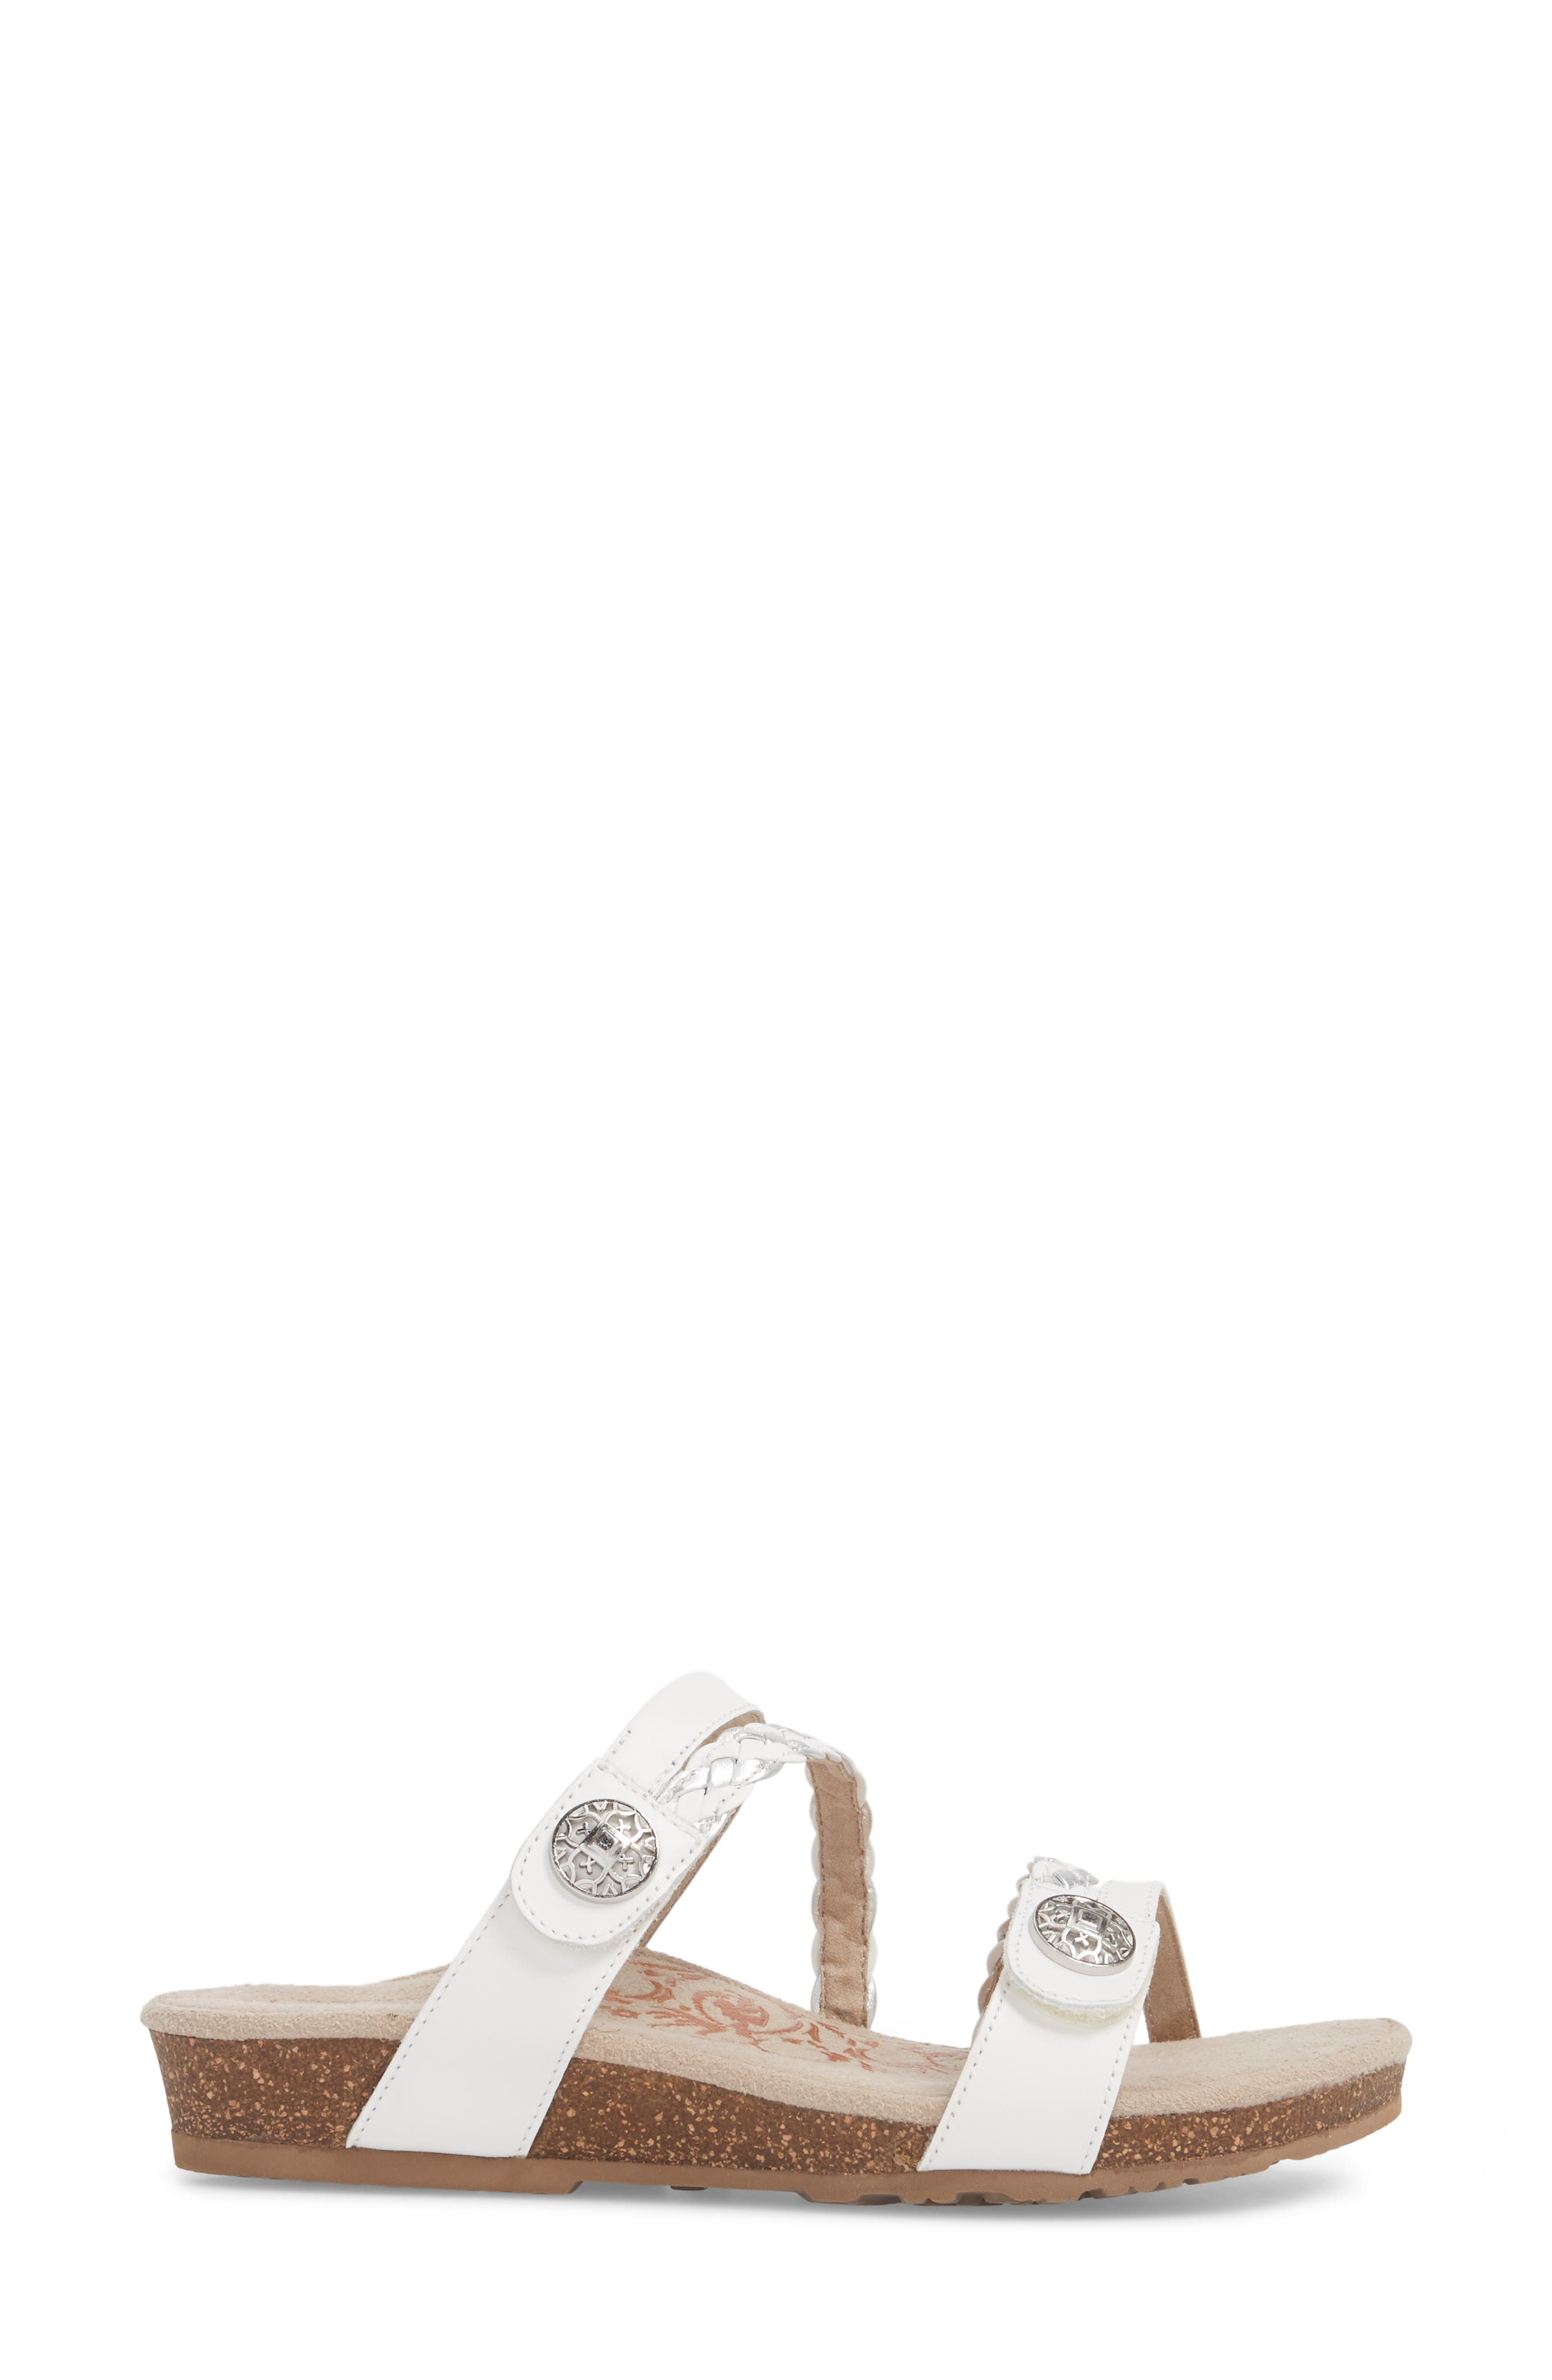 Janey Braided Slide Sandal,                             Alternate thumbnail 3, color,                             WHITE LEATHER